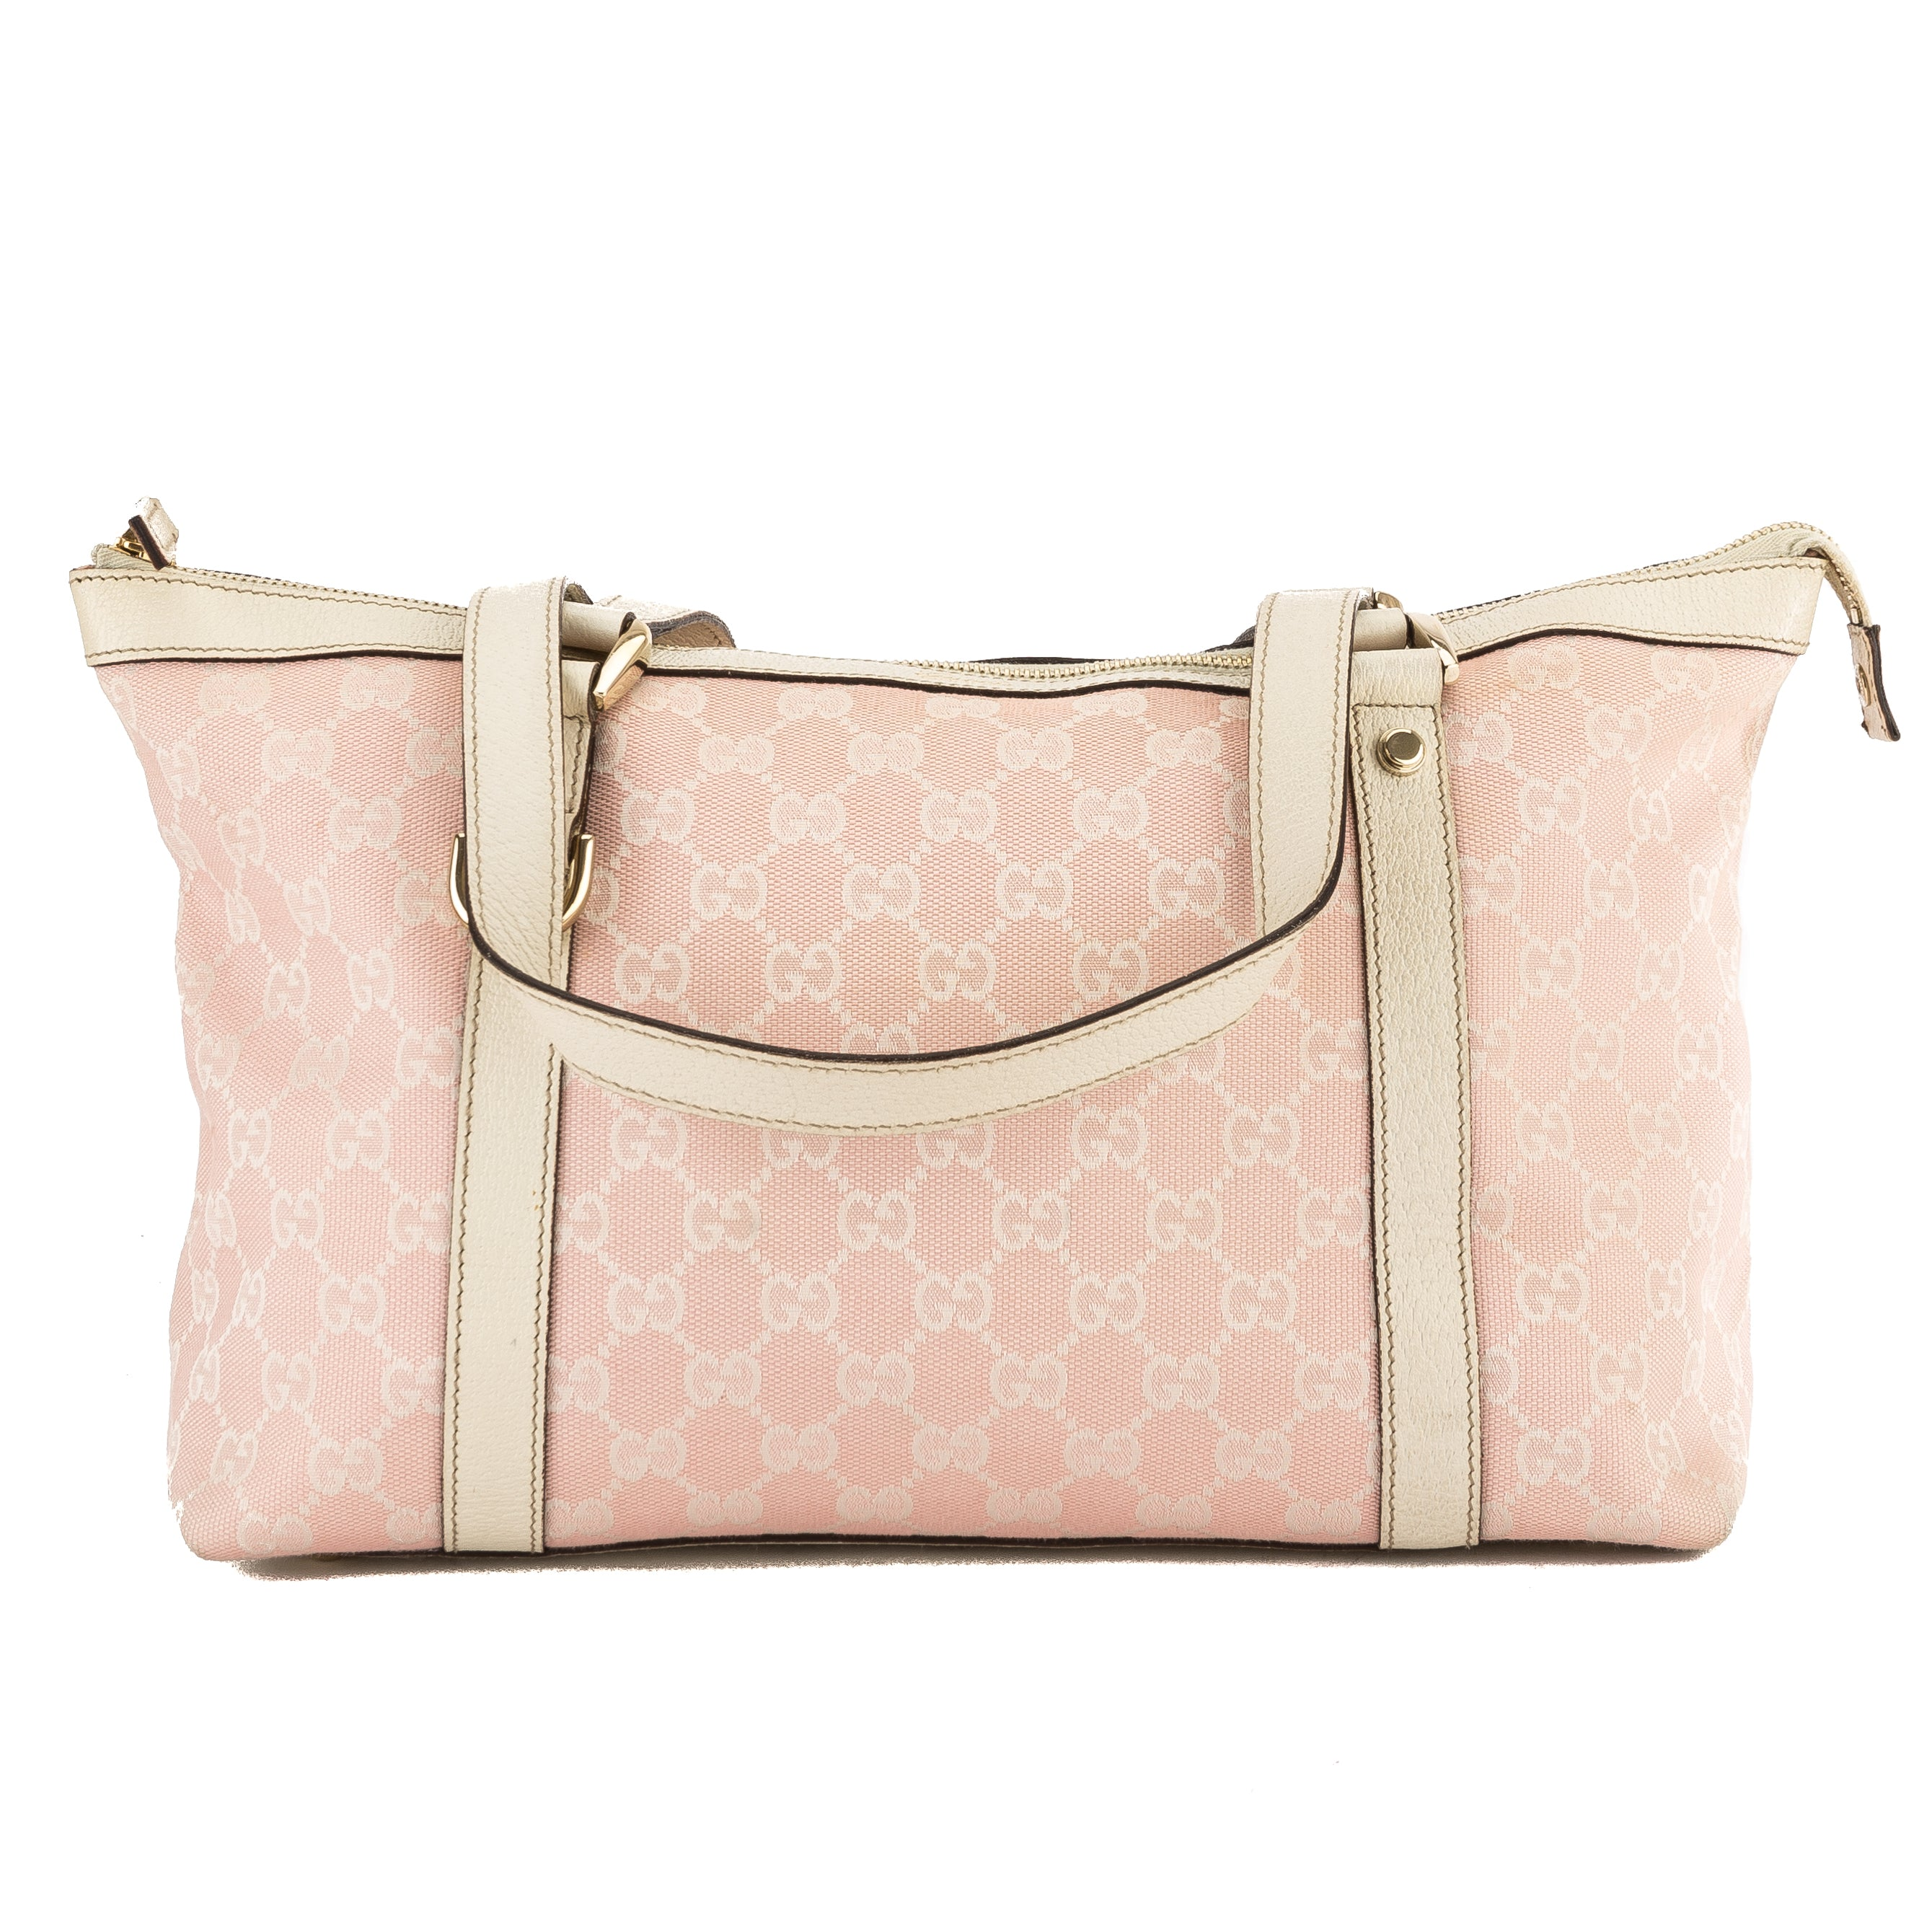 ece5ccbe95a7 Gucci Pink and White GG Monogram Canvas Medium Abbey Tote Bag Pre Owned